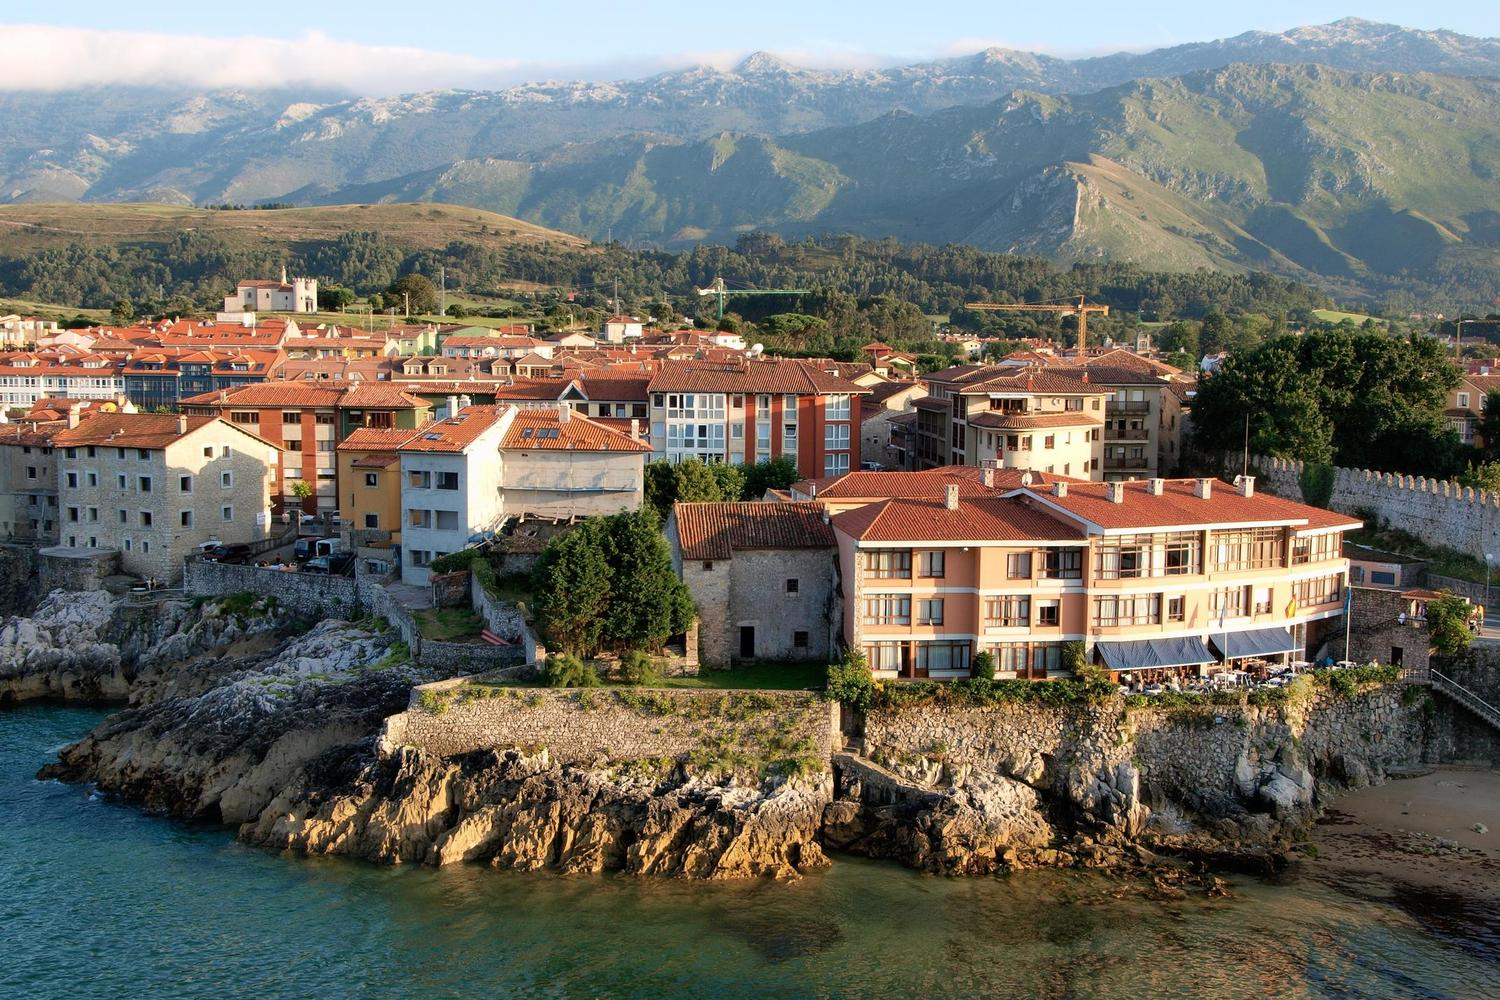 The pretty waterfront of Llanes with the Picos mountains behind